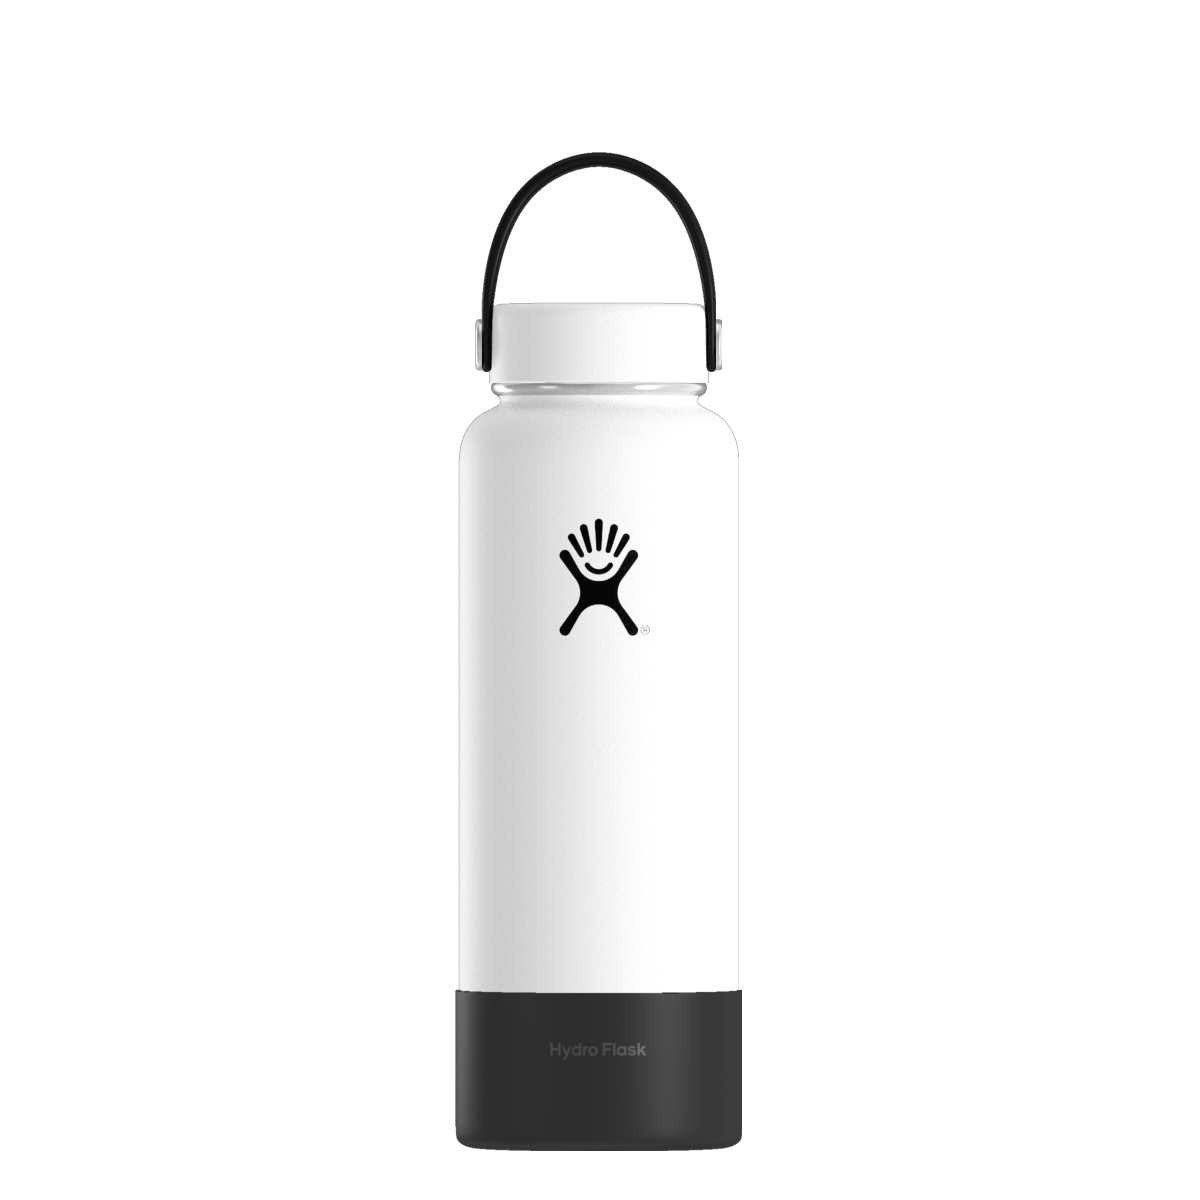 Design Your Custom Wide Mouth Bottle My Hydro By Hydro Flask Hydro Flask Bottle Water Bottle Design Hydroflask